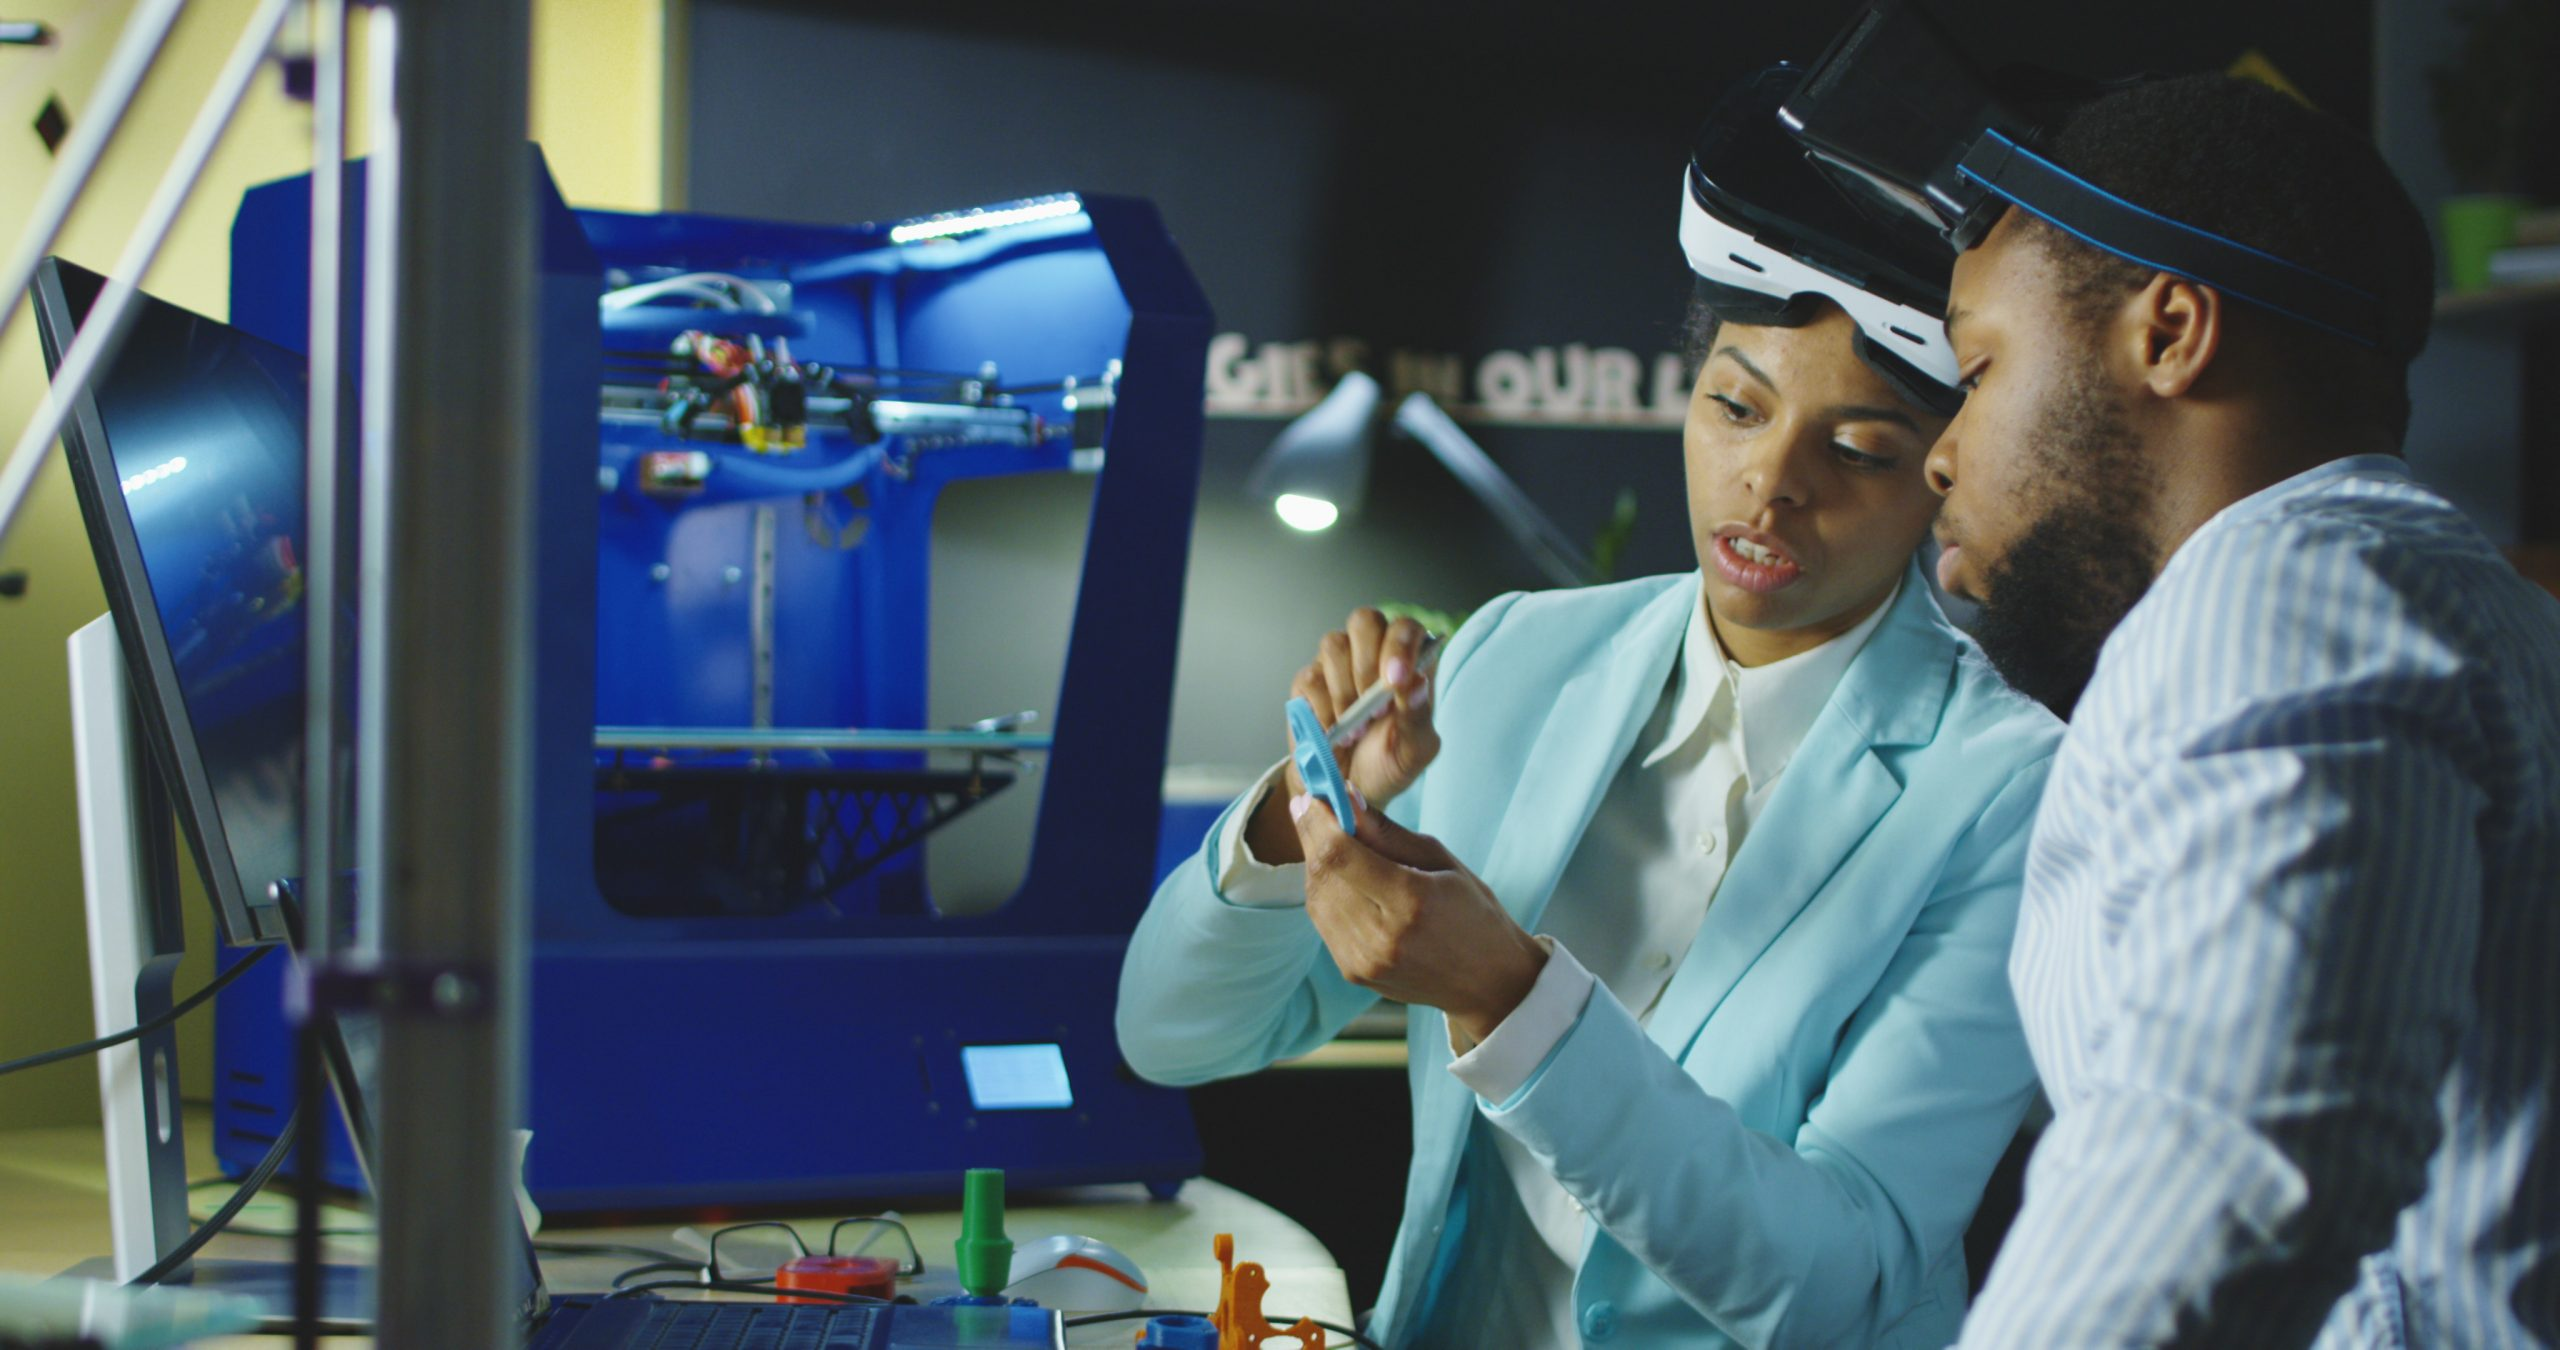 Hide Engineers Using 3D Printers and Virtual Reality